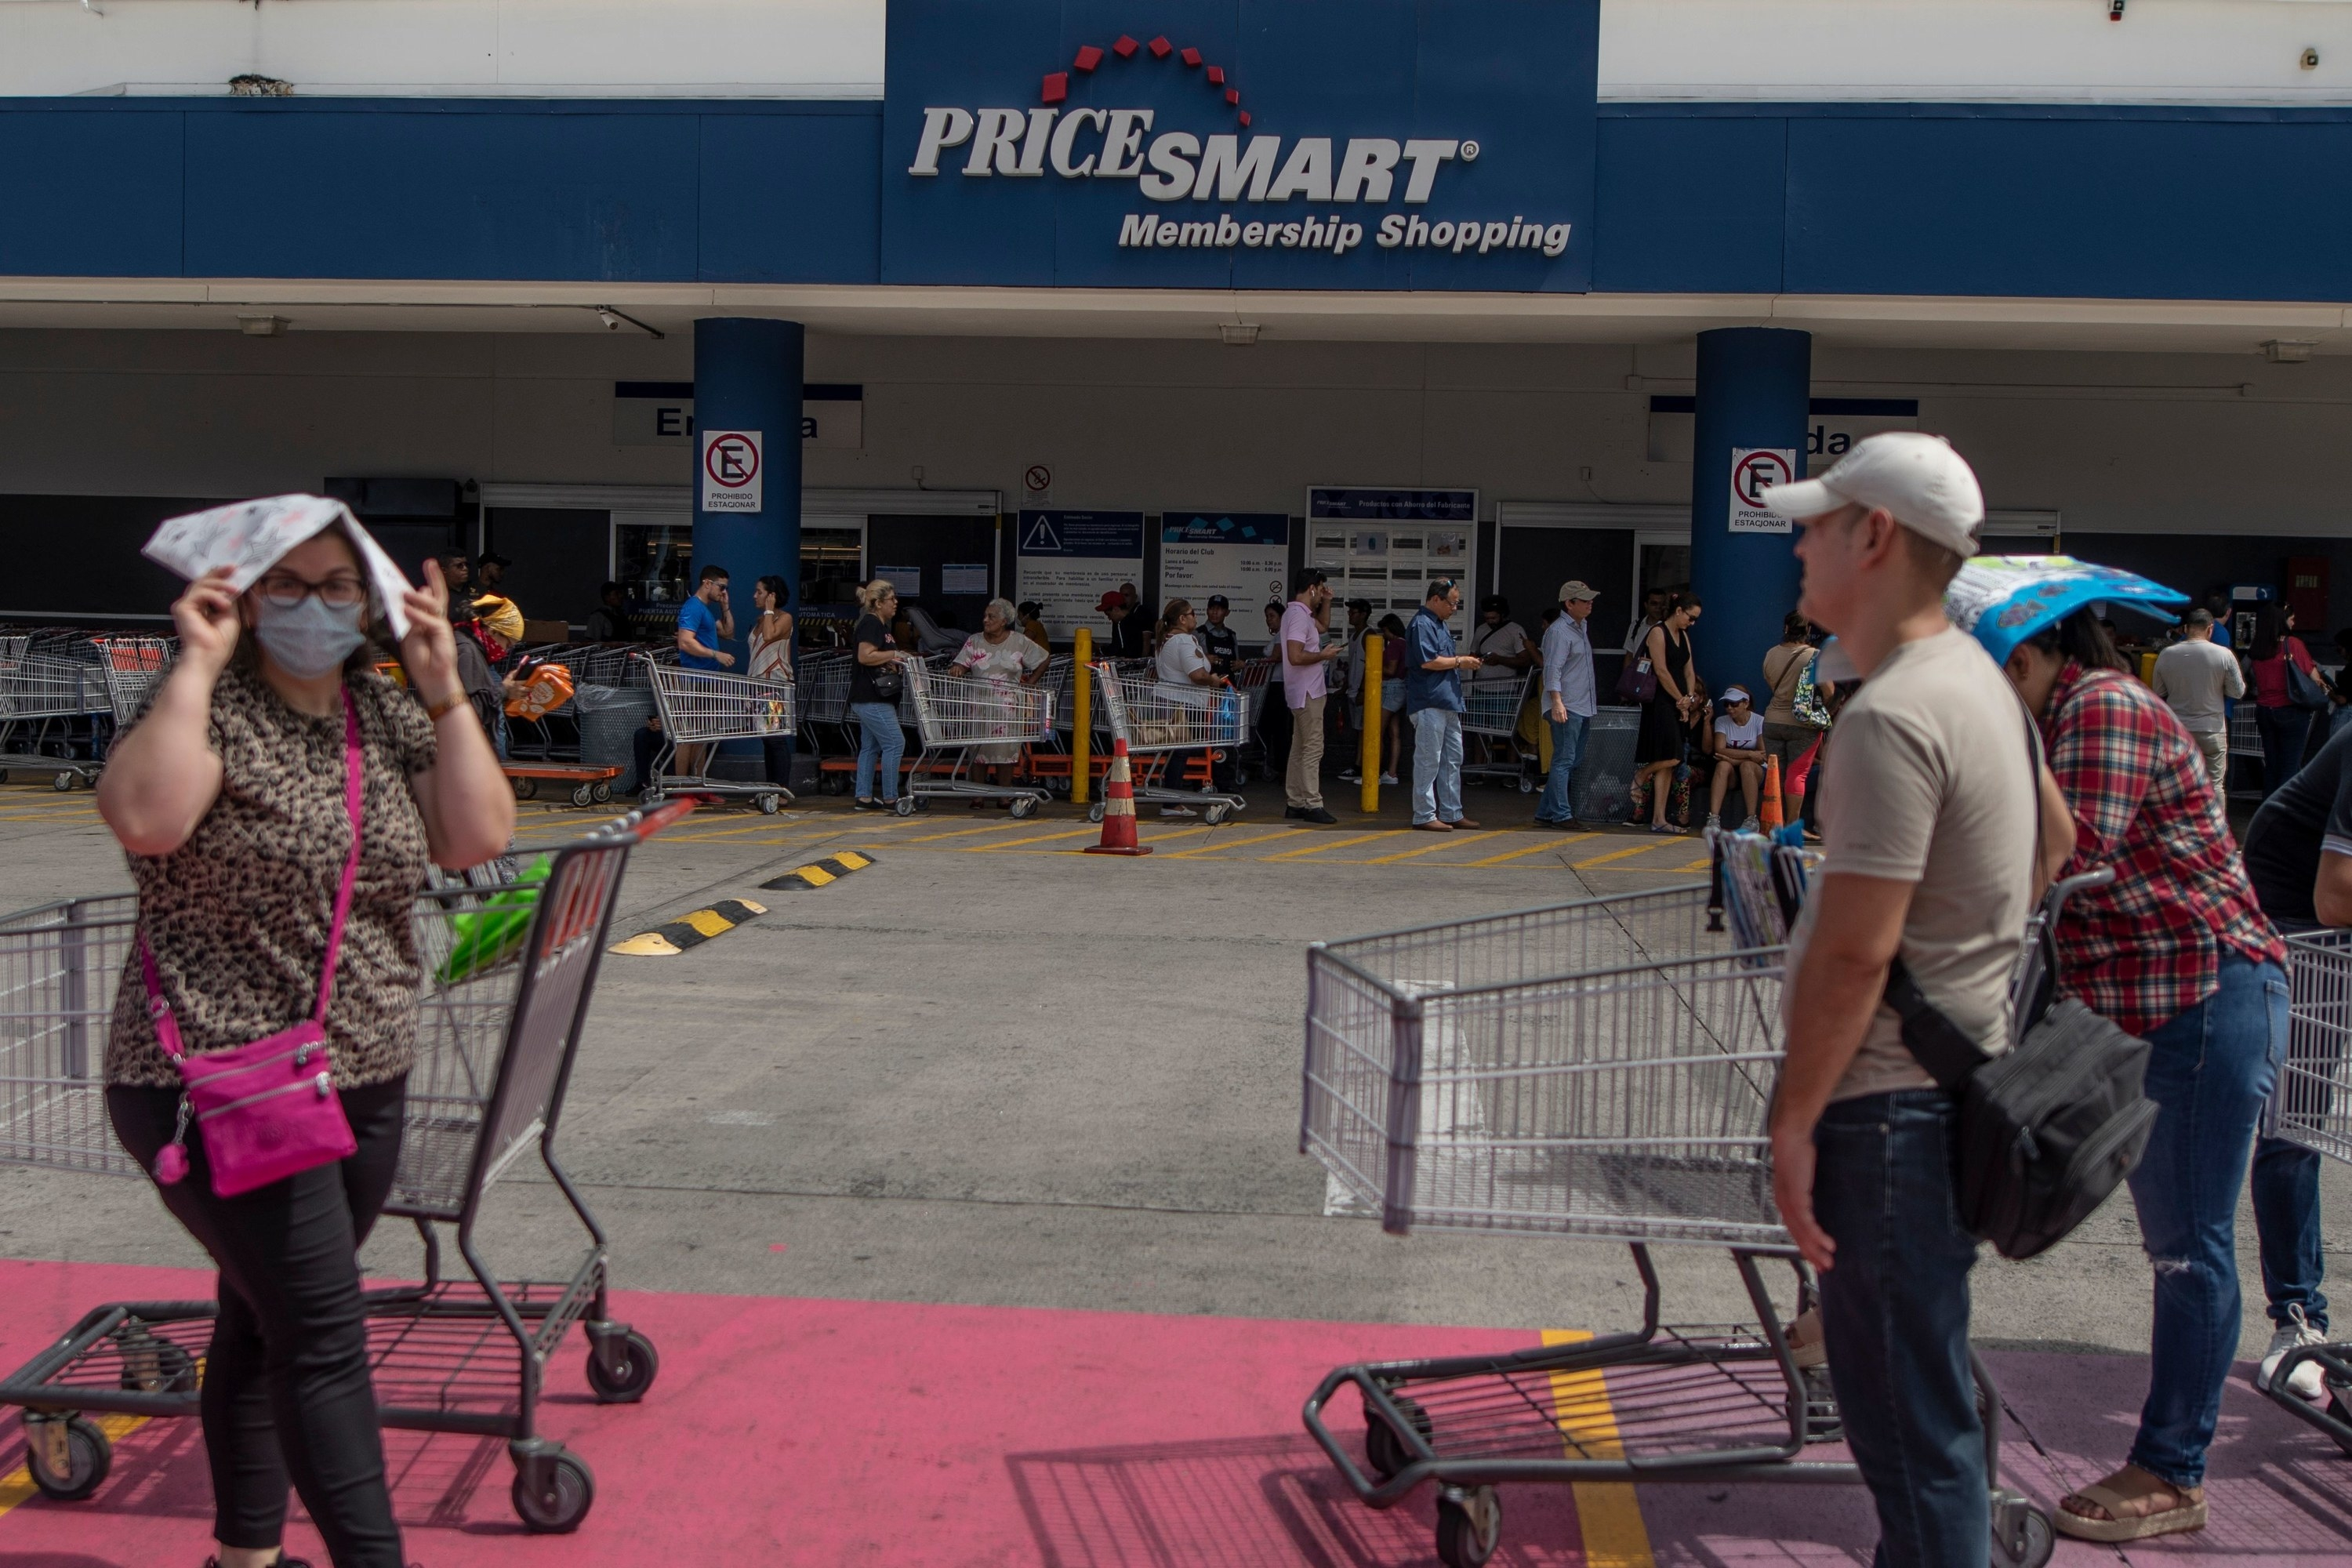 The line outside of a Pricesmart supermarket